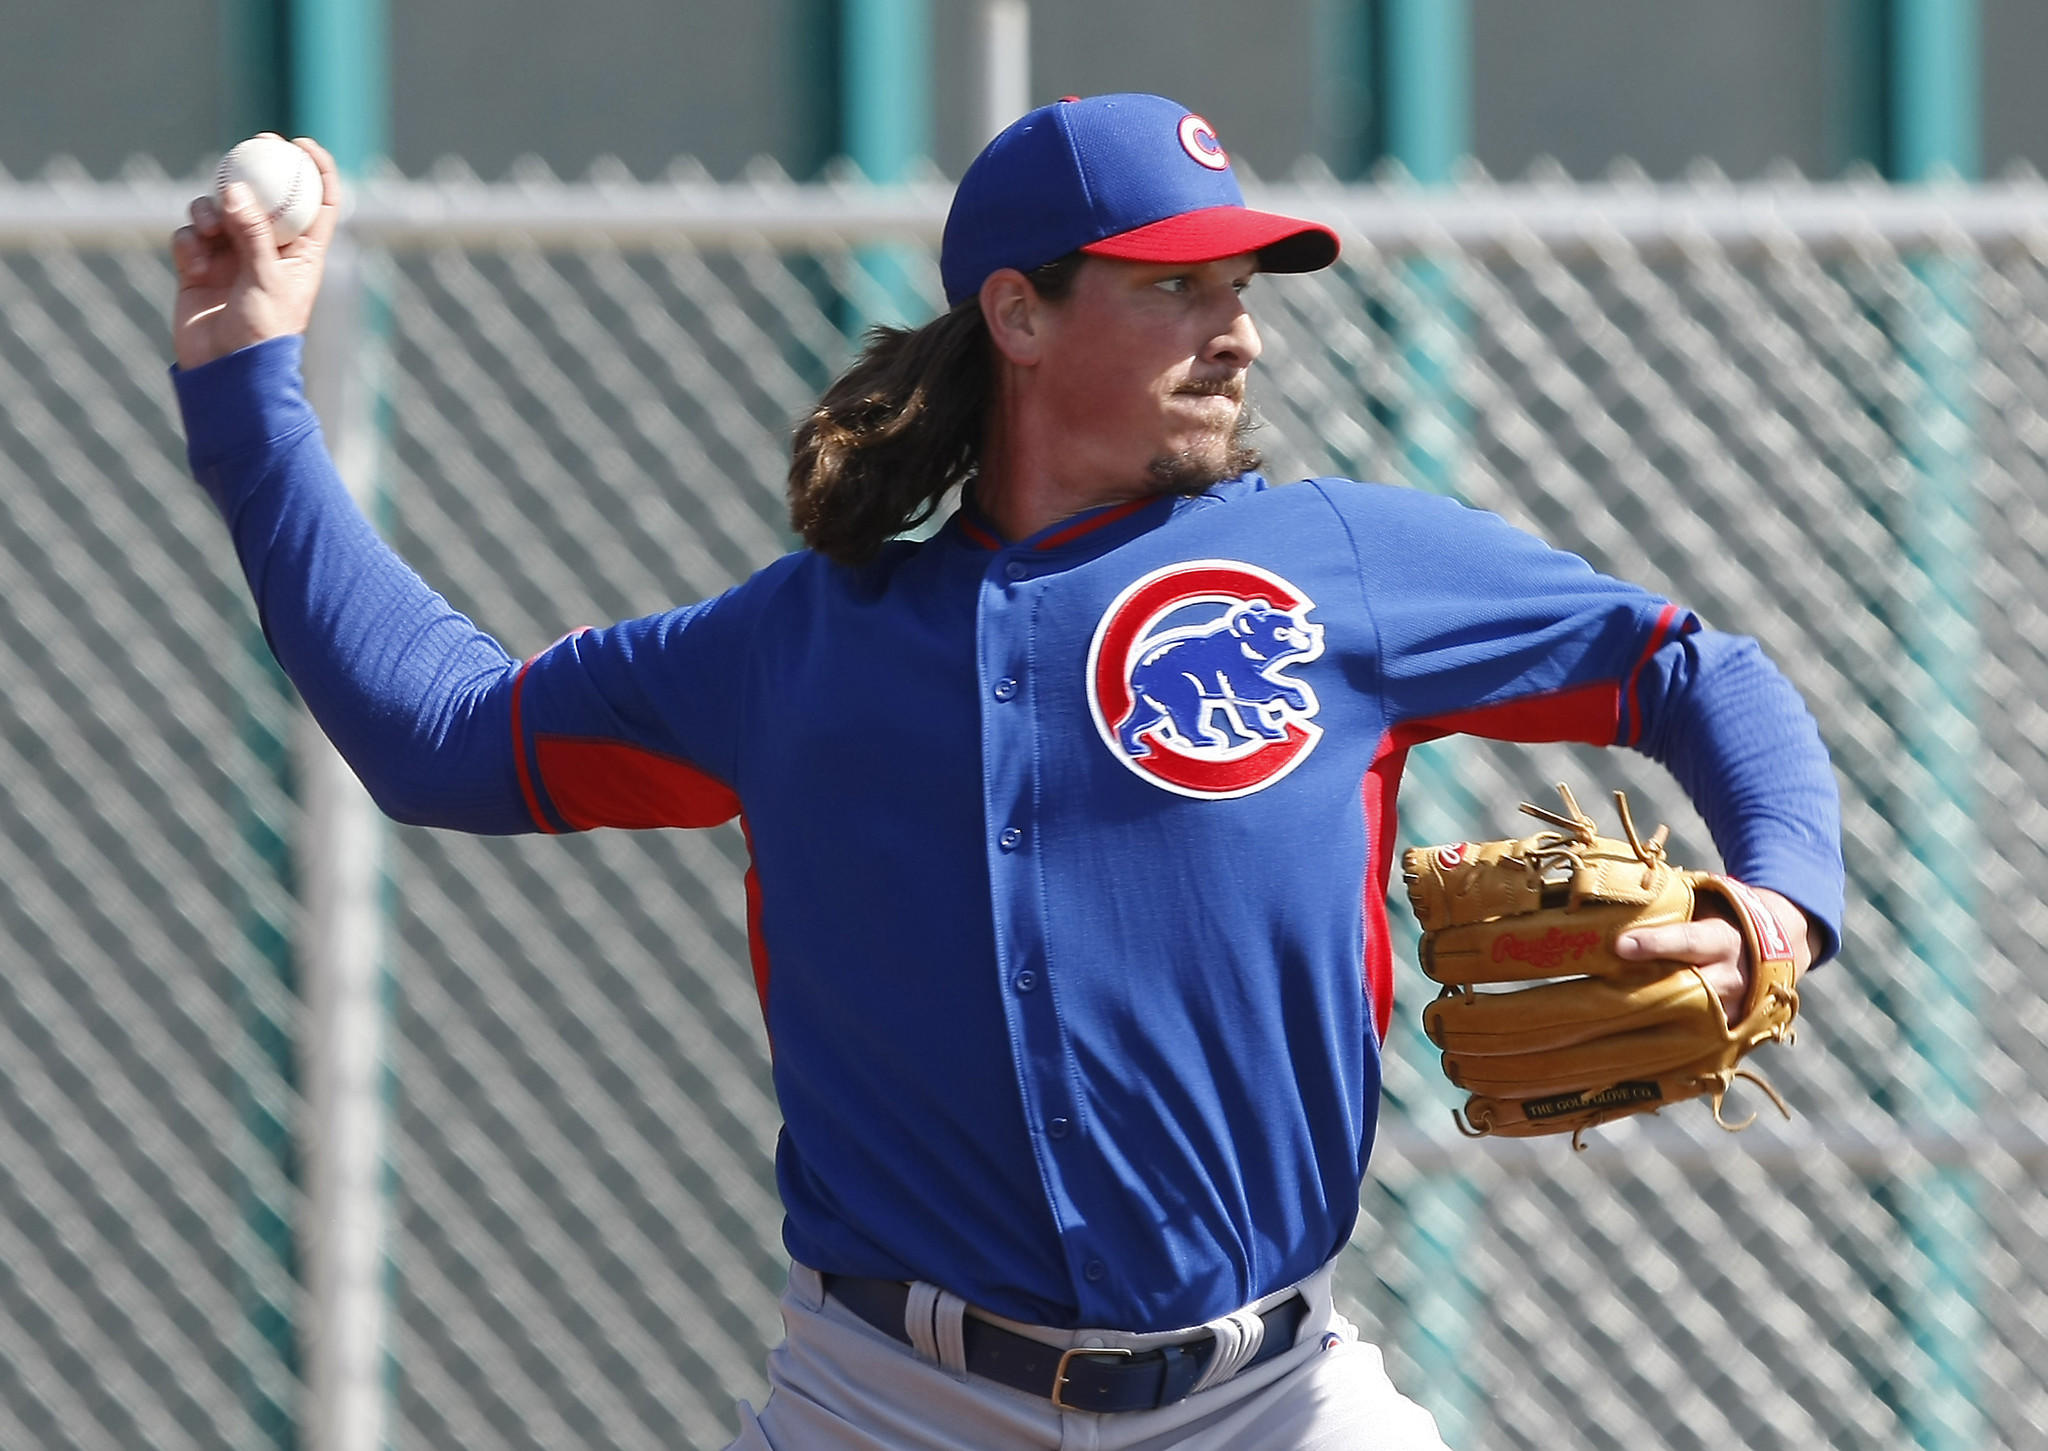 Chicago Cubs pitcher Jeff Samardzija throws out of the bullpen during spring training Friday in Mesa, Ariz.